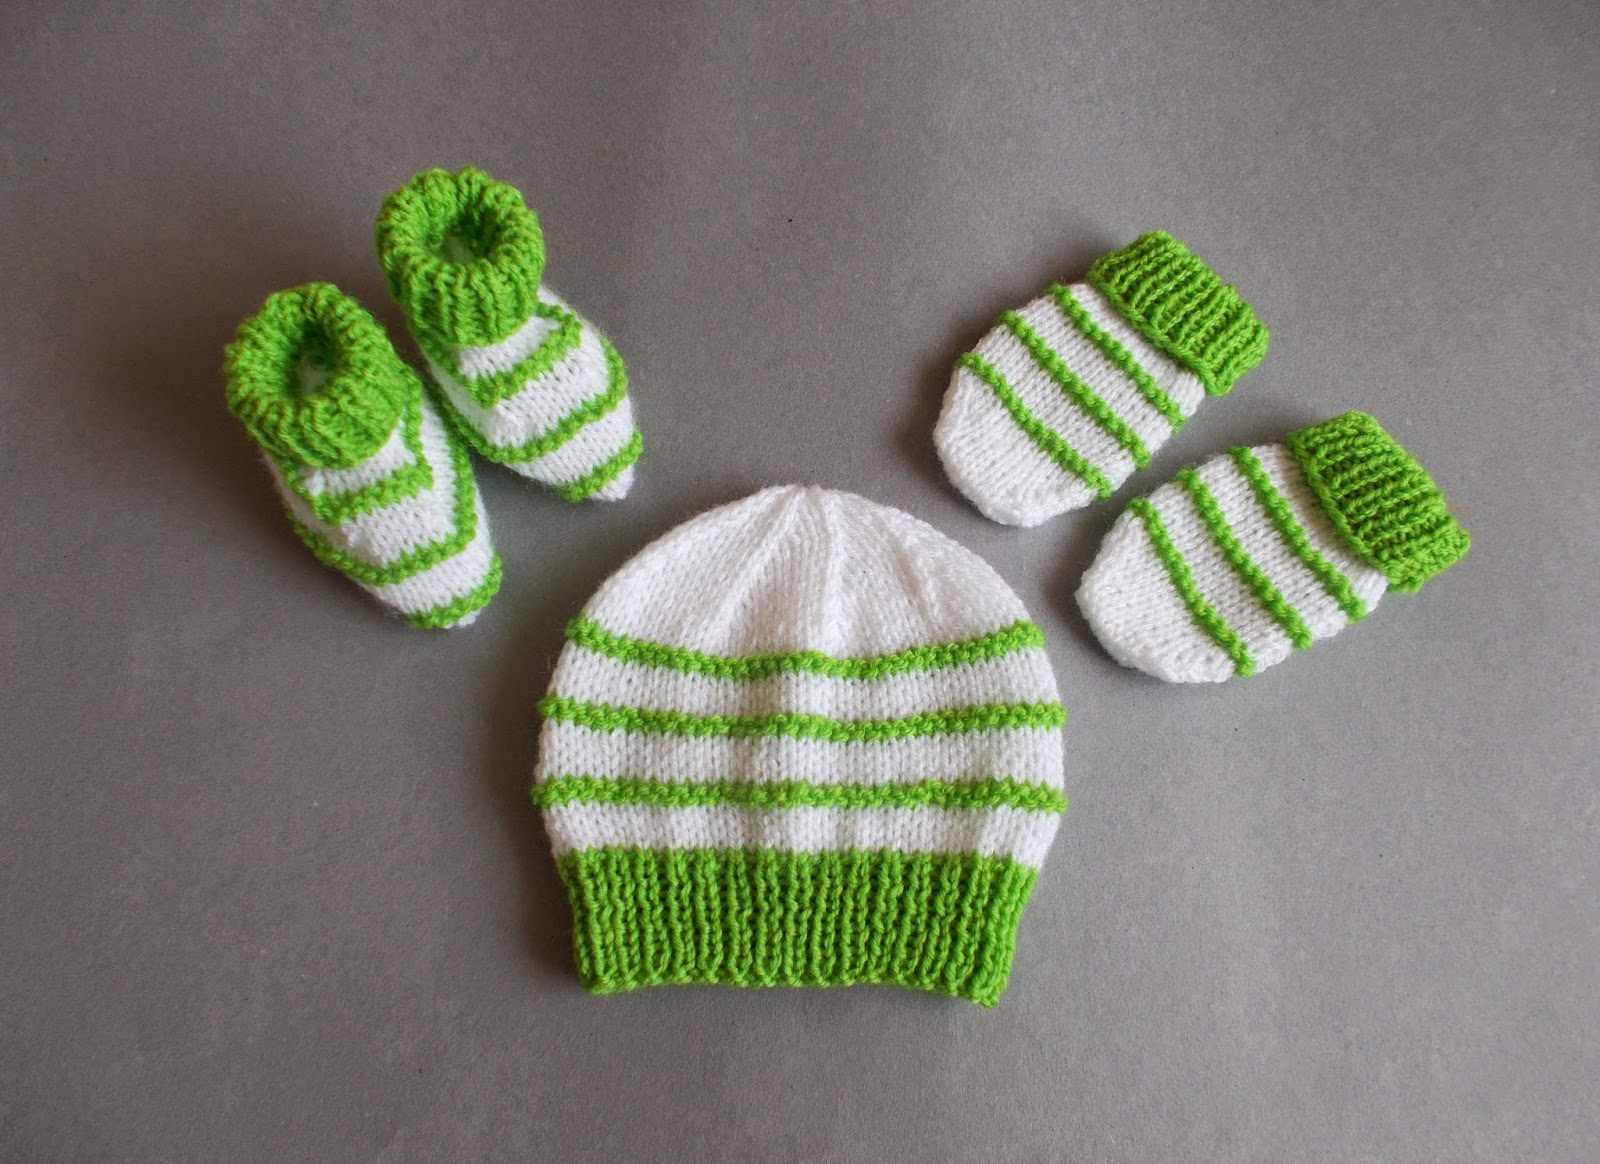 Knit Garter Stitch Baby Hat : mariannas lazy daisy days: Knitted Baby Girl Hats